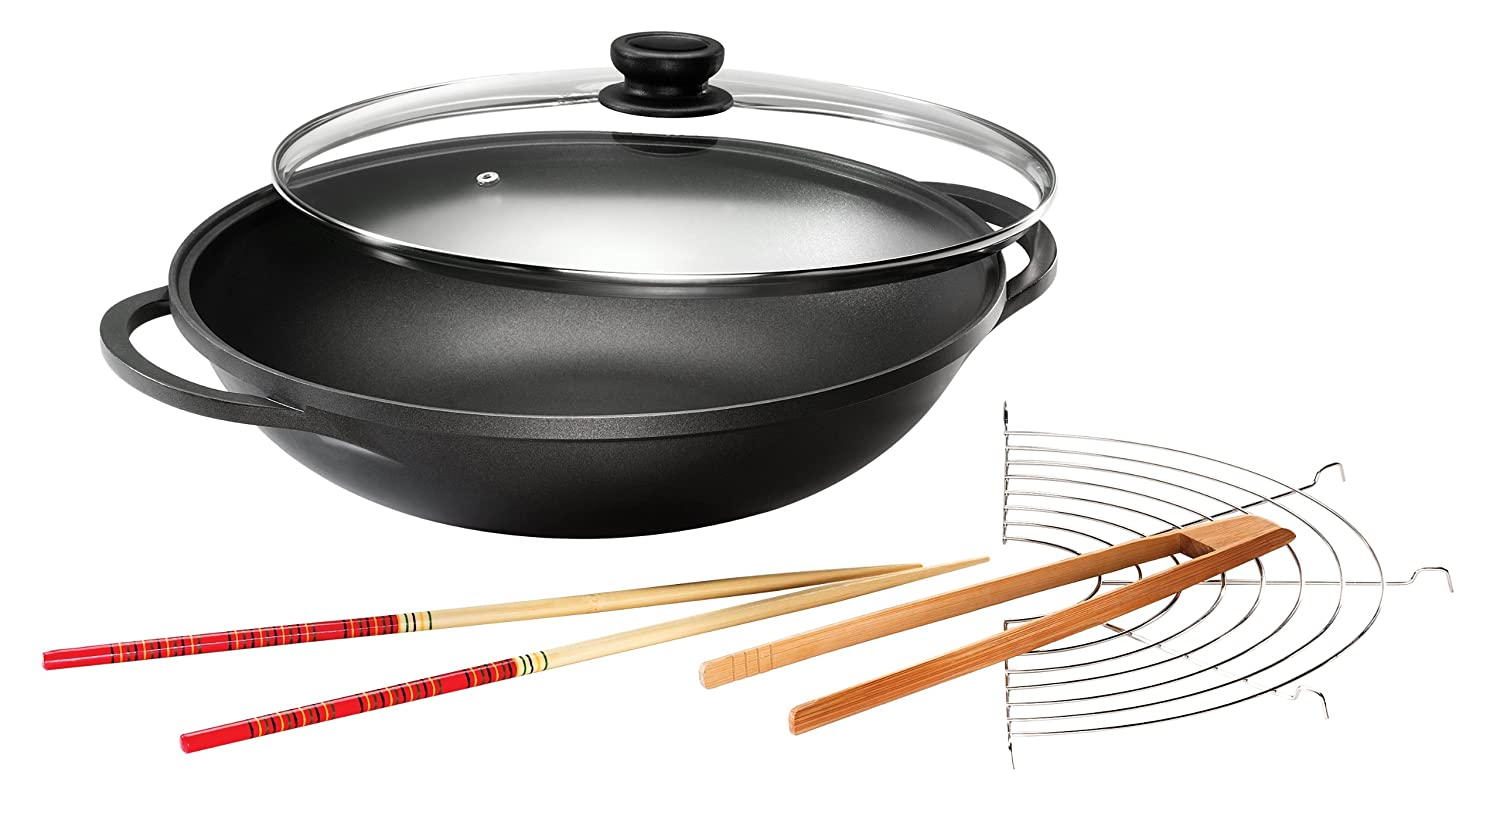 Karcher Wok Mai-Lin with Glass Lid and Accessories, Cast Aluminium with ILAG Non-Stick Coating, Diameter 36 cm 120292